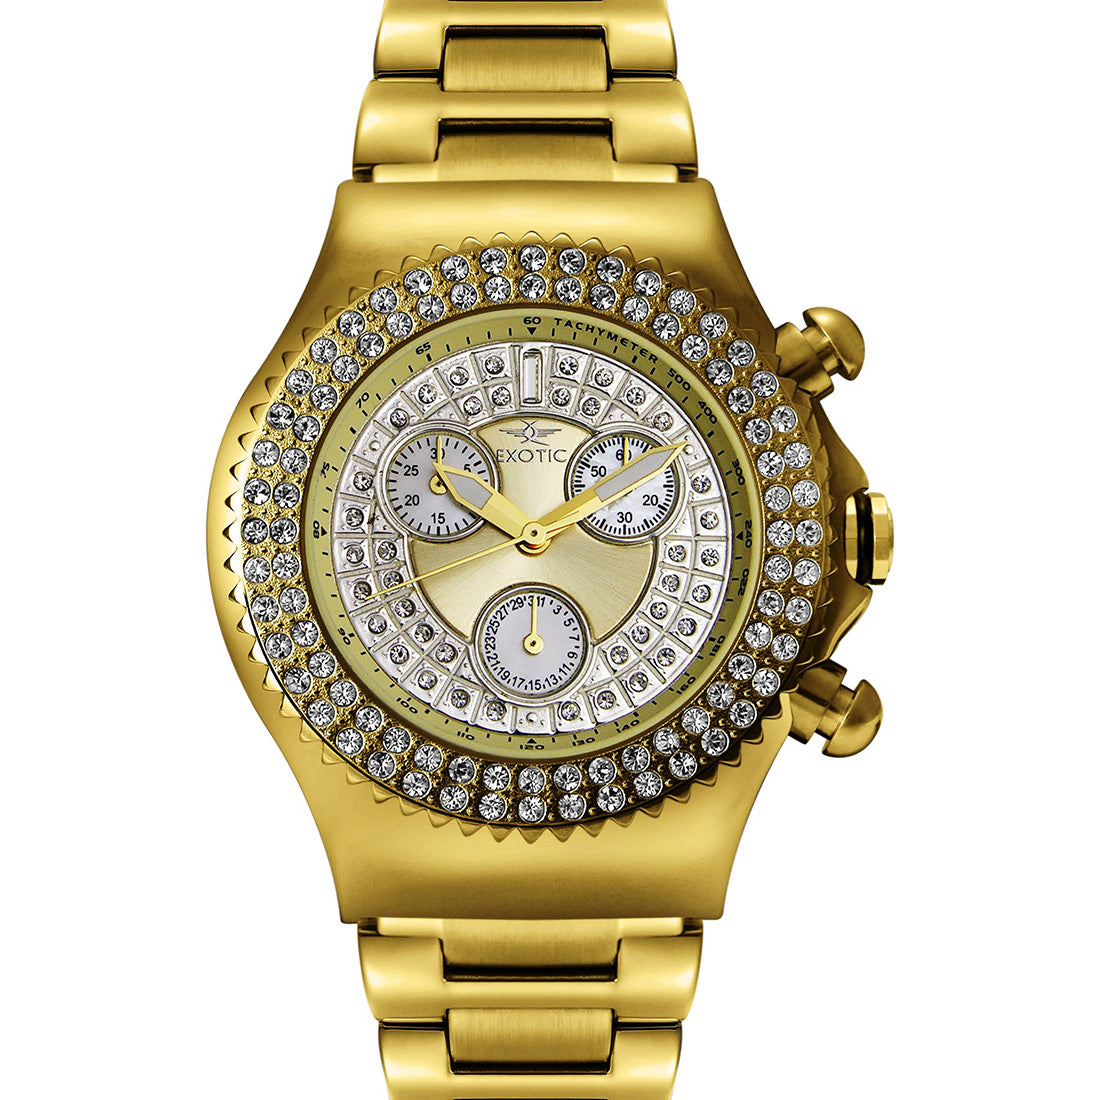 Women watch (Exotic) Swiss Made -3807